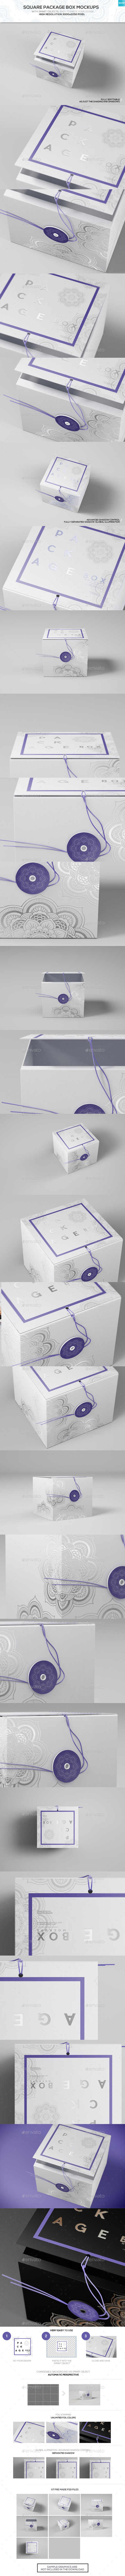 Square Package Box Mockups - Miscellaneous Packaging